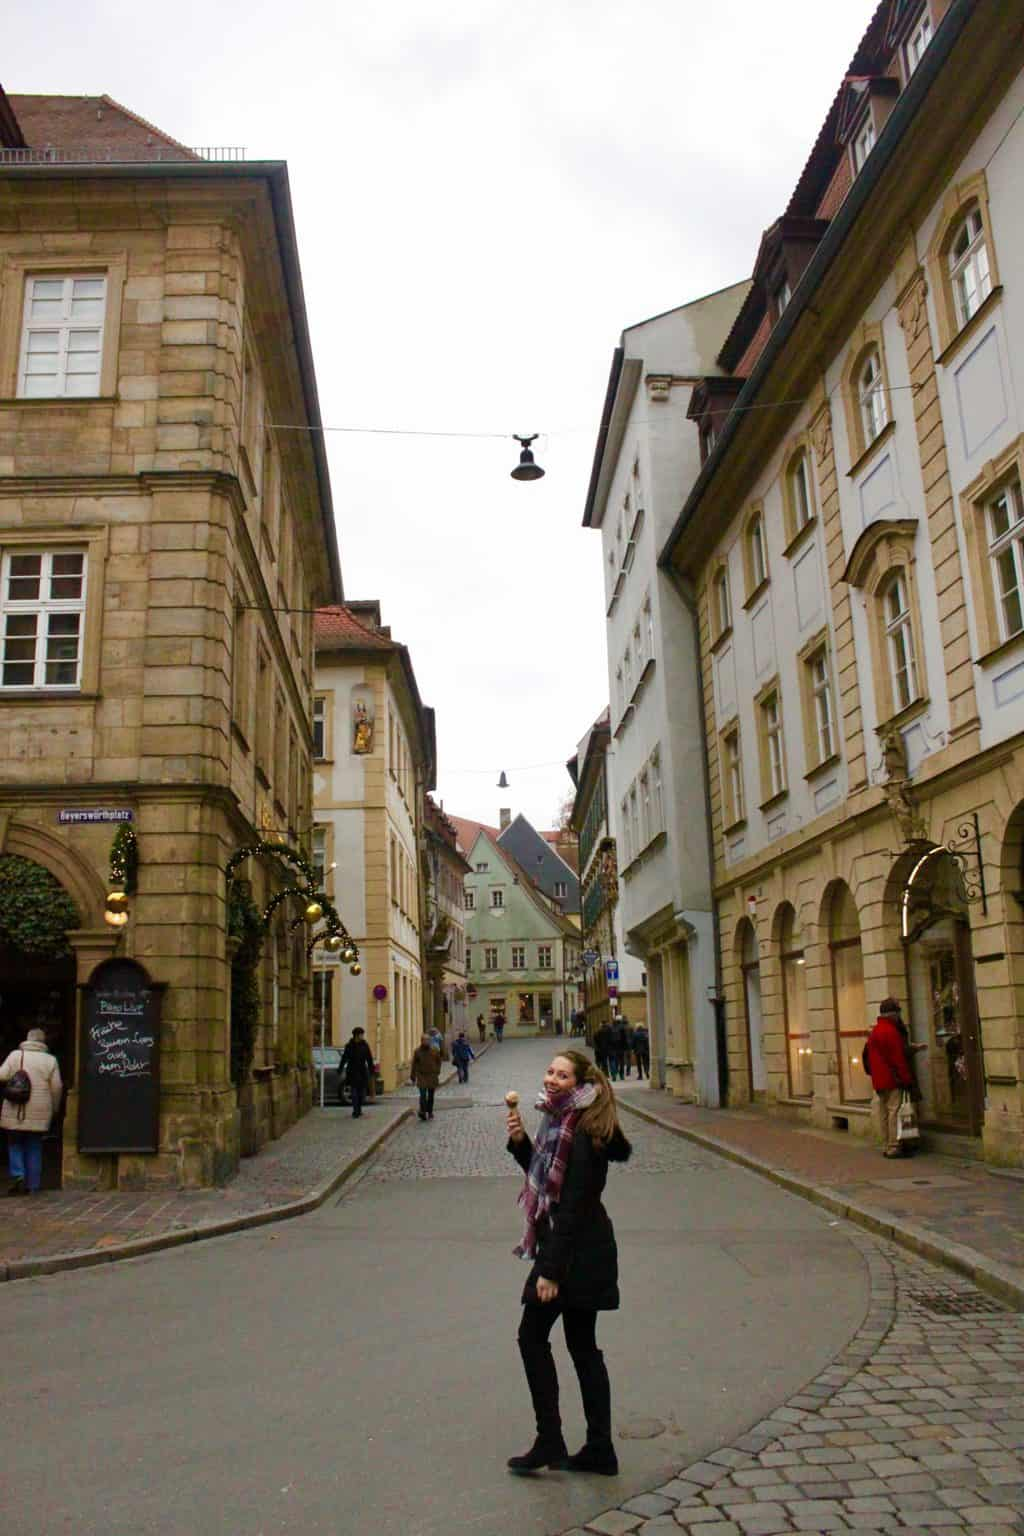 Wandering the streets of Bamberg